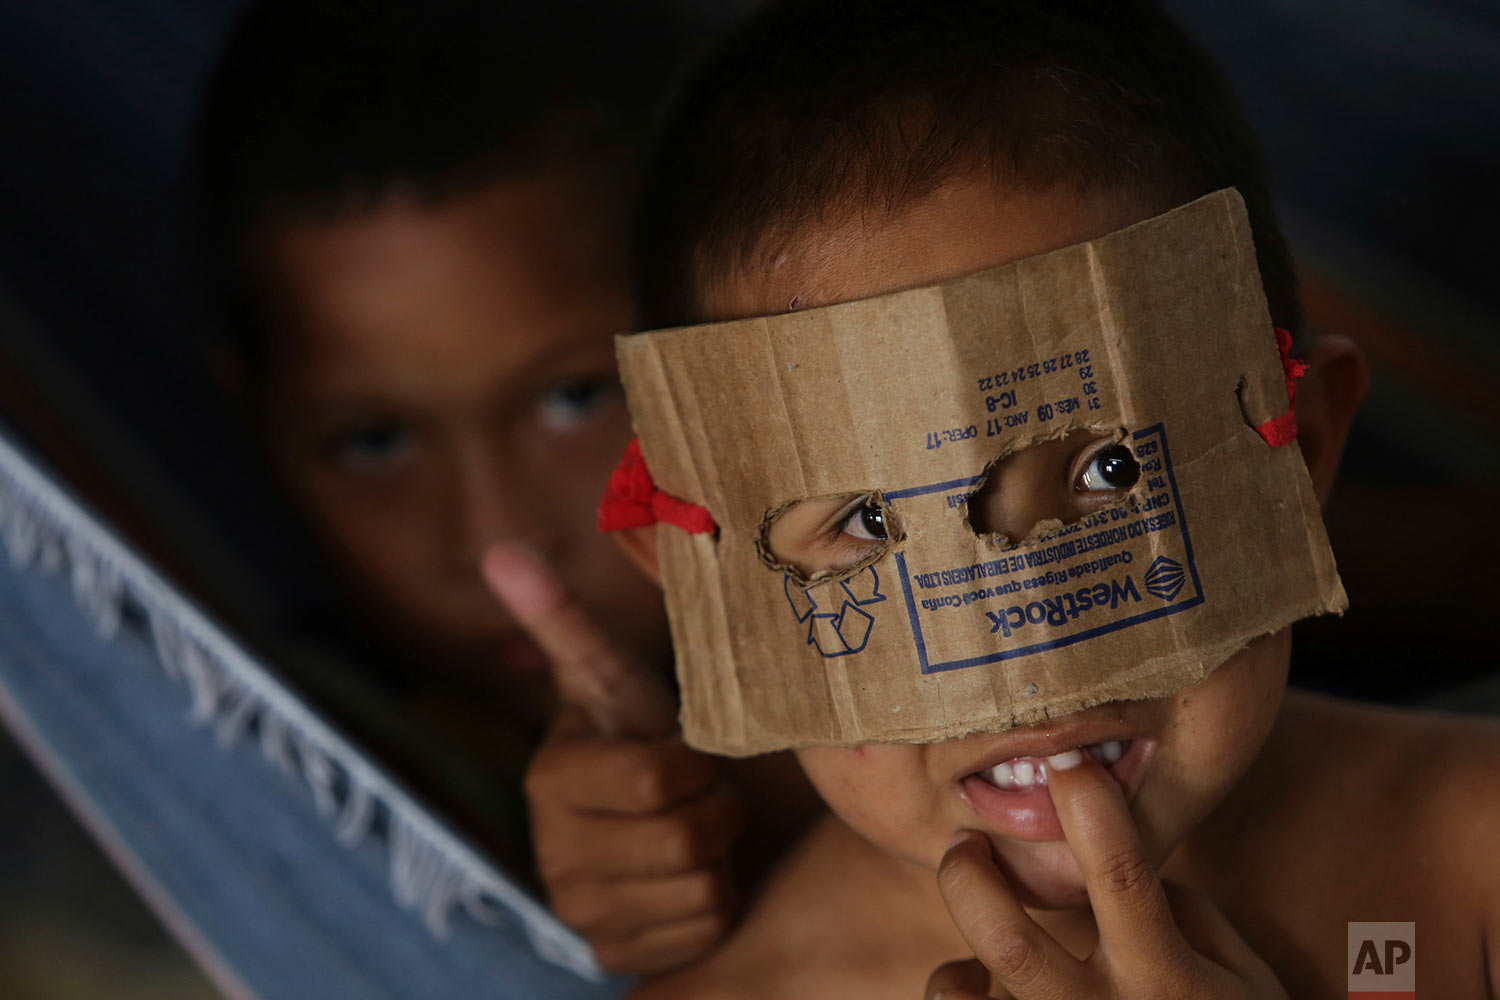 A Warao indigenous boy from Venezuela dons a mask fashioned from cardboard at a a shelter in Pacaraima, the main entry point for Venezuelans in the Brazilian state of Roraima, March 10, 2018. Opened late last year with the capacity to house about 250 people, the shelter, a former warehouse, today has upwards of 500, and more are arriving daily. (AP Photo/Eraldo Peres)